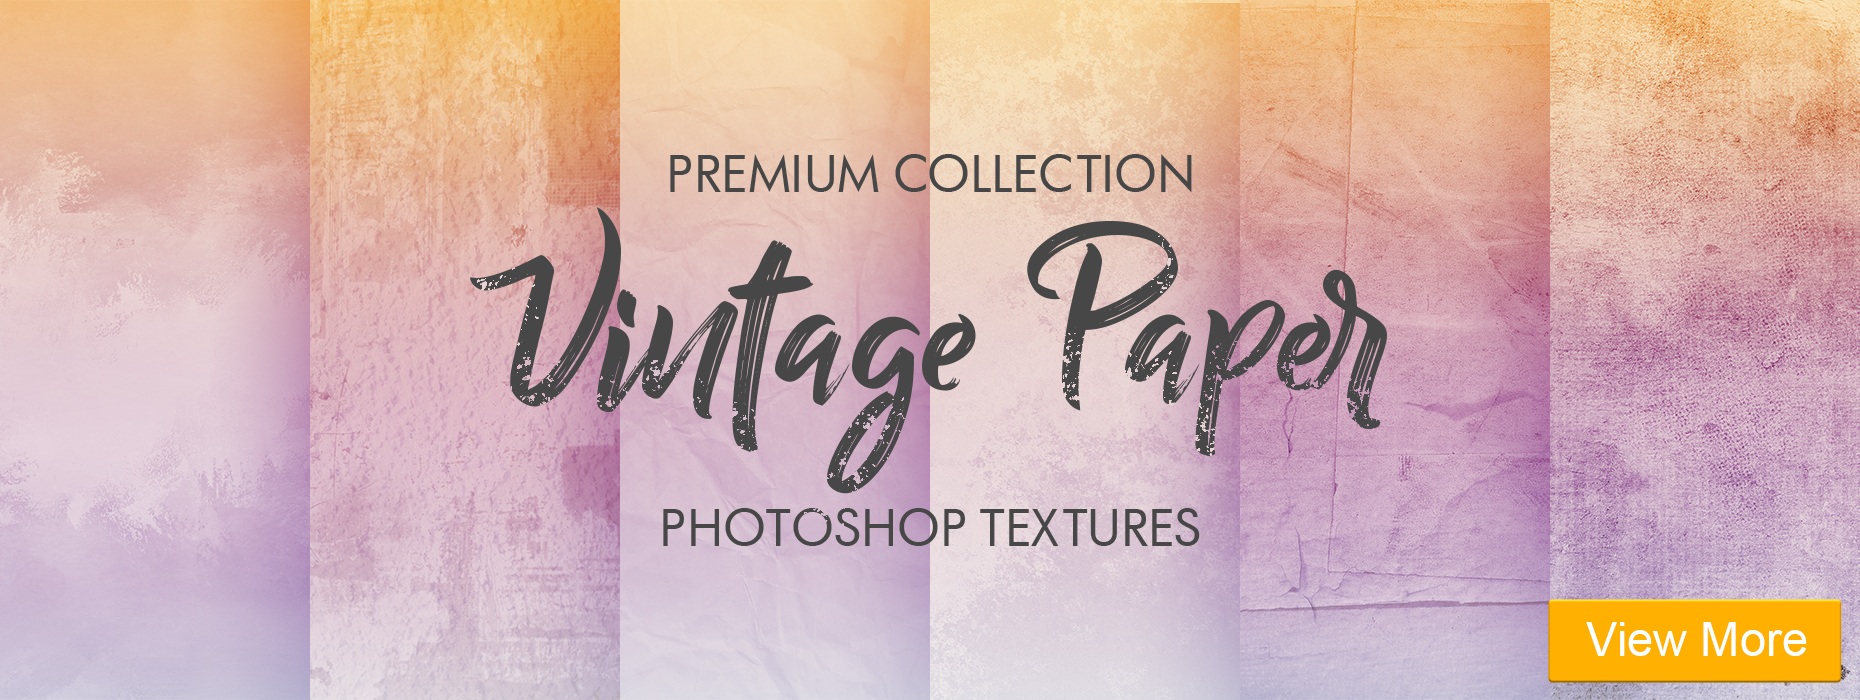 free paper texture photoshop vintage portrait lightroom presets banner girl